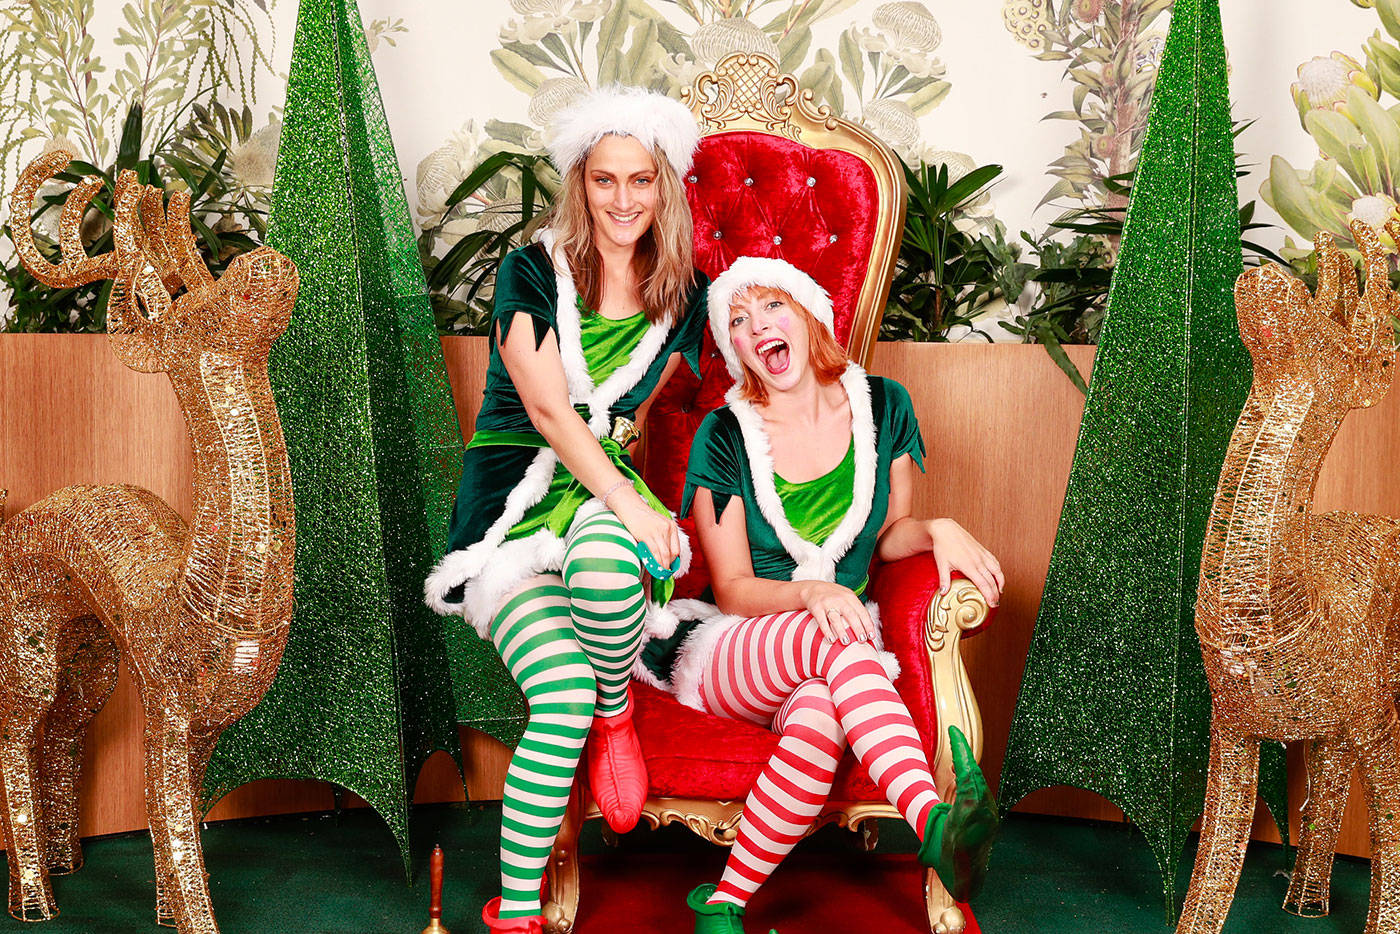 Two female elves sitting on Santa's chair